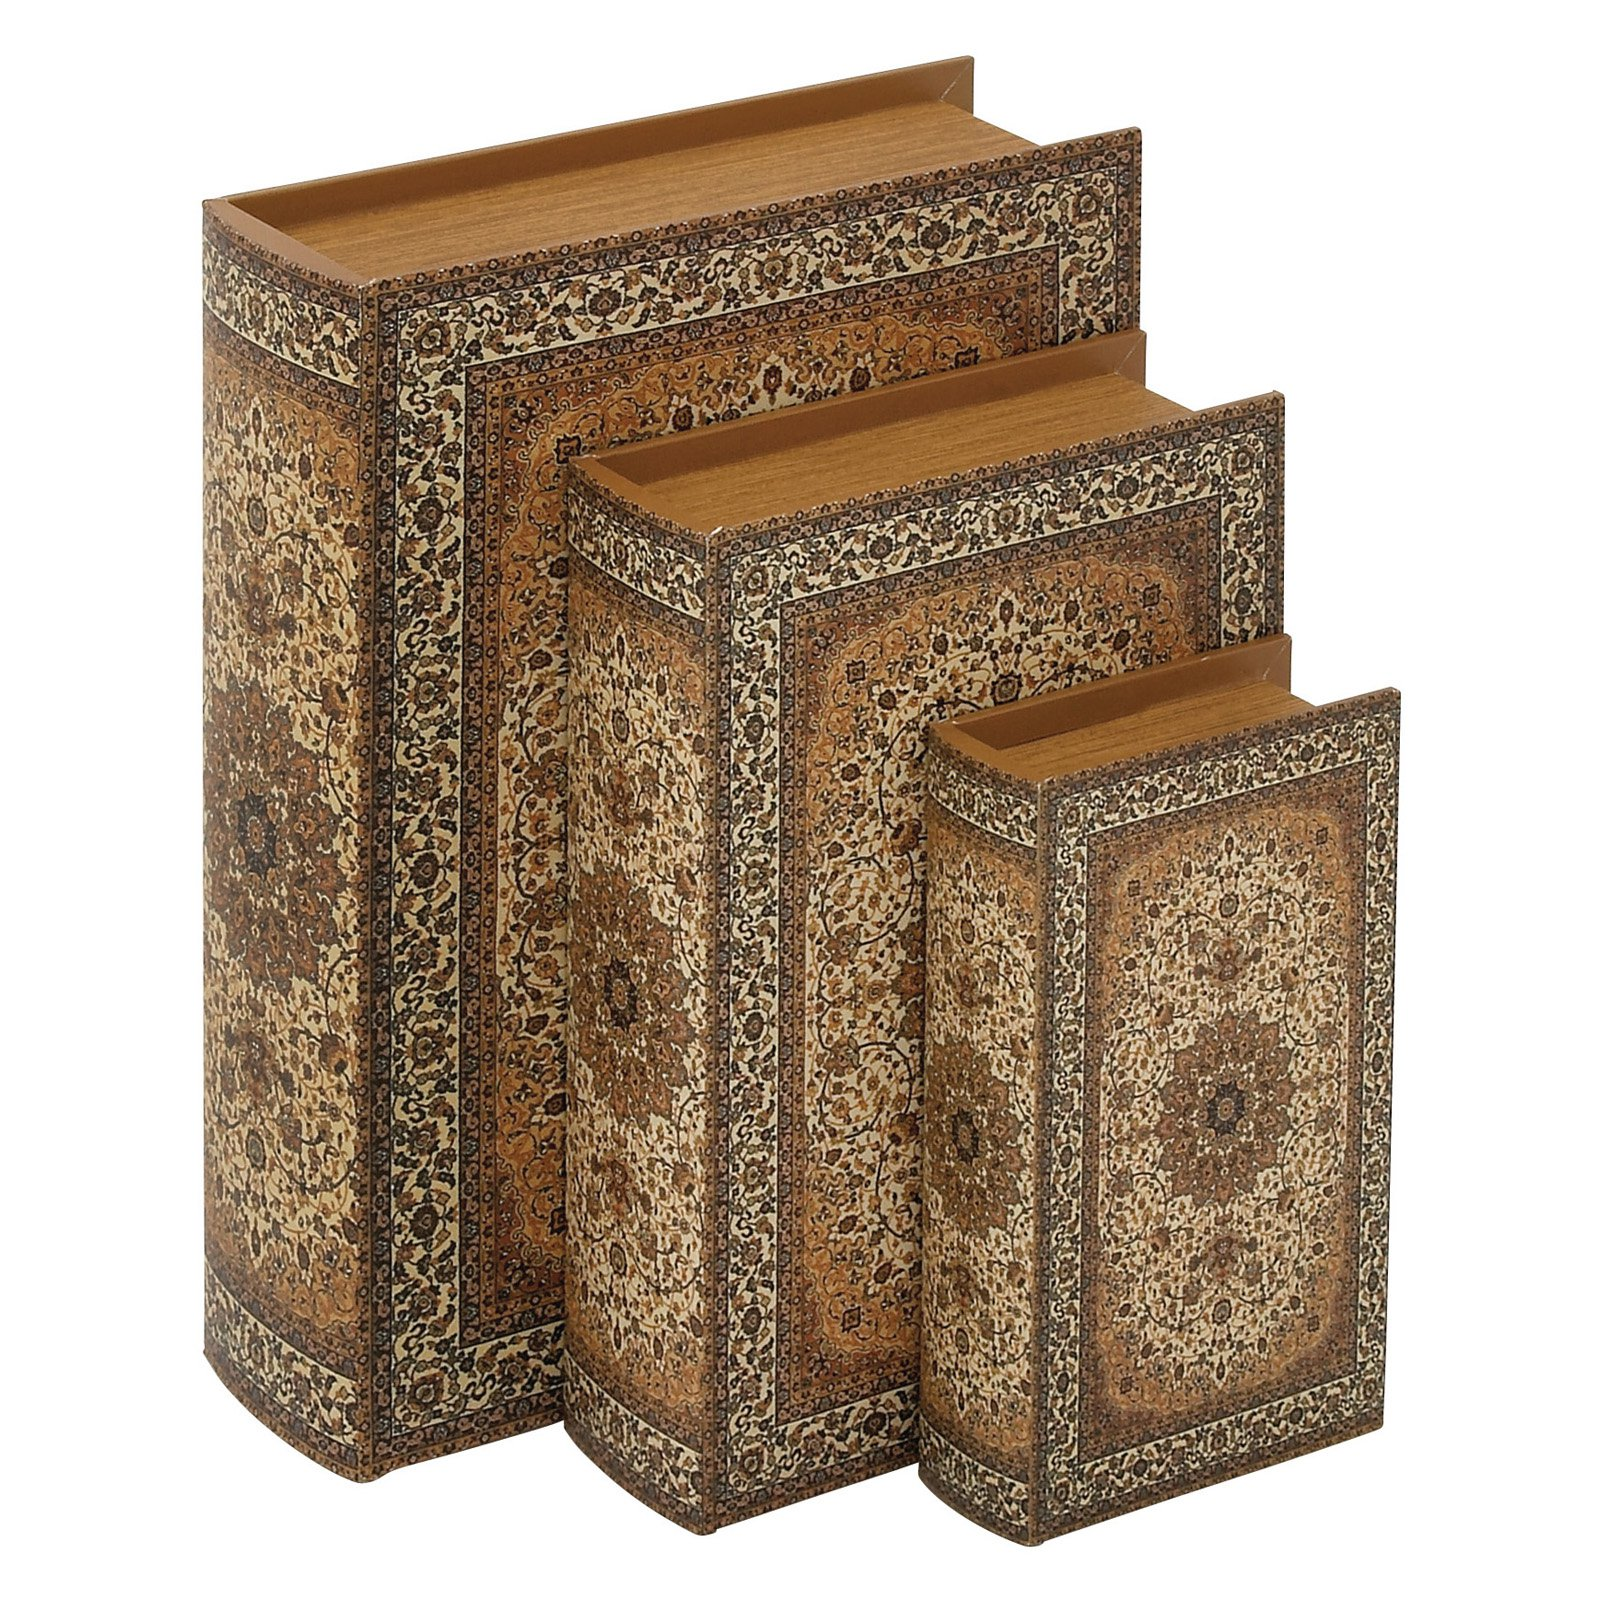 Wood Faux Leather Book Box Set Of 3, Multi